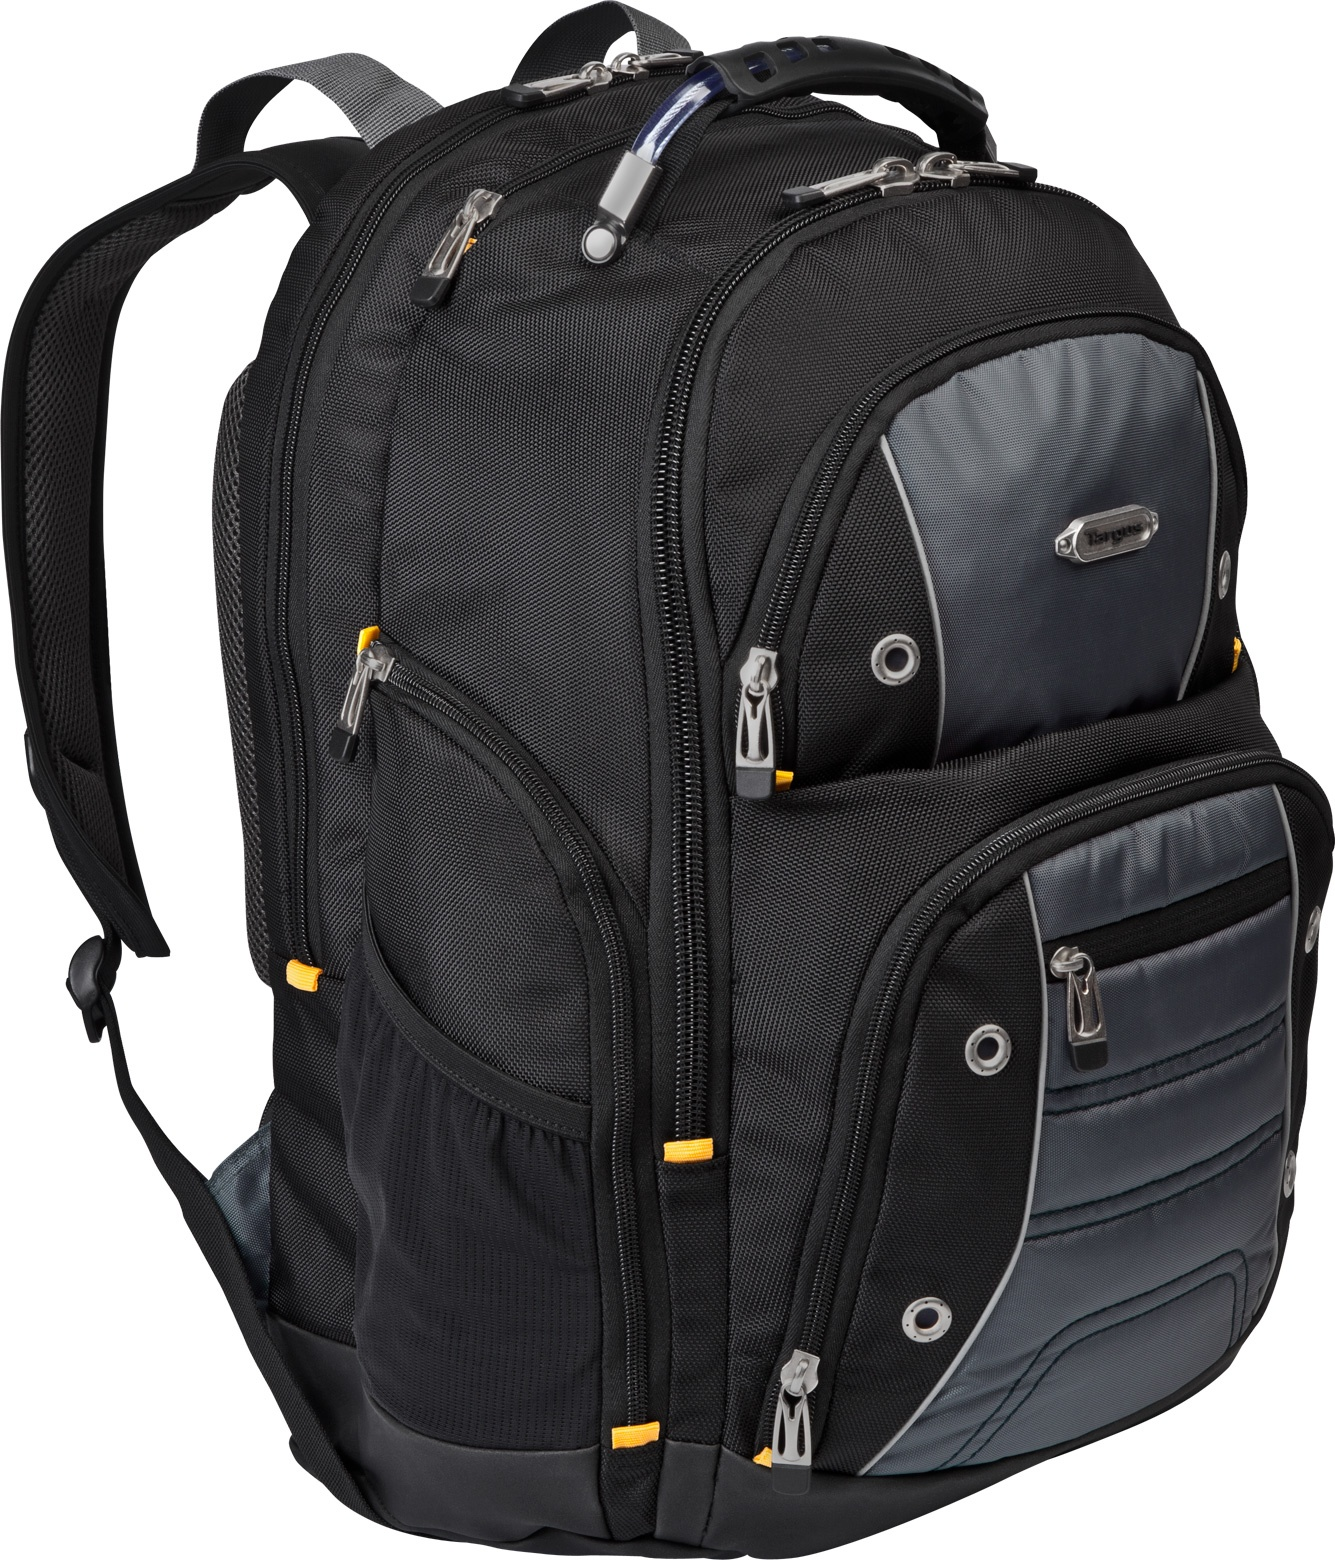 Targus Drifter II for Professional Business Commuter Backpack for 17-Inch Laptop, Black/Gray (TSB239US) by Targus